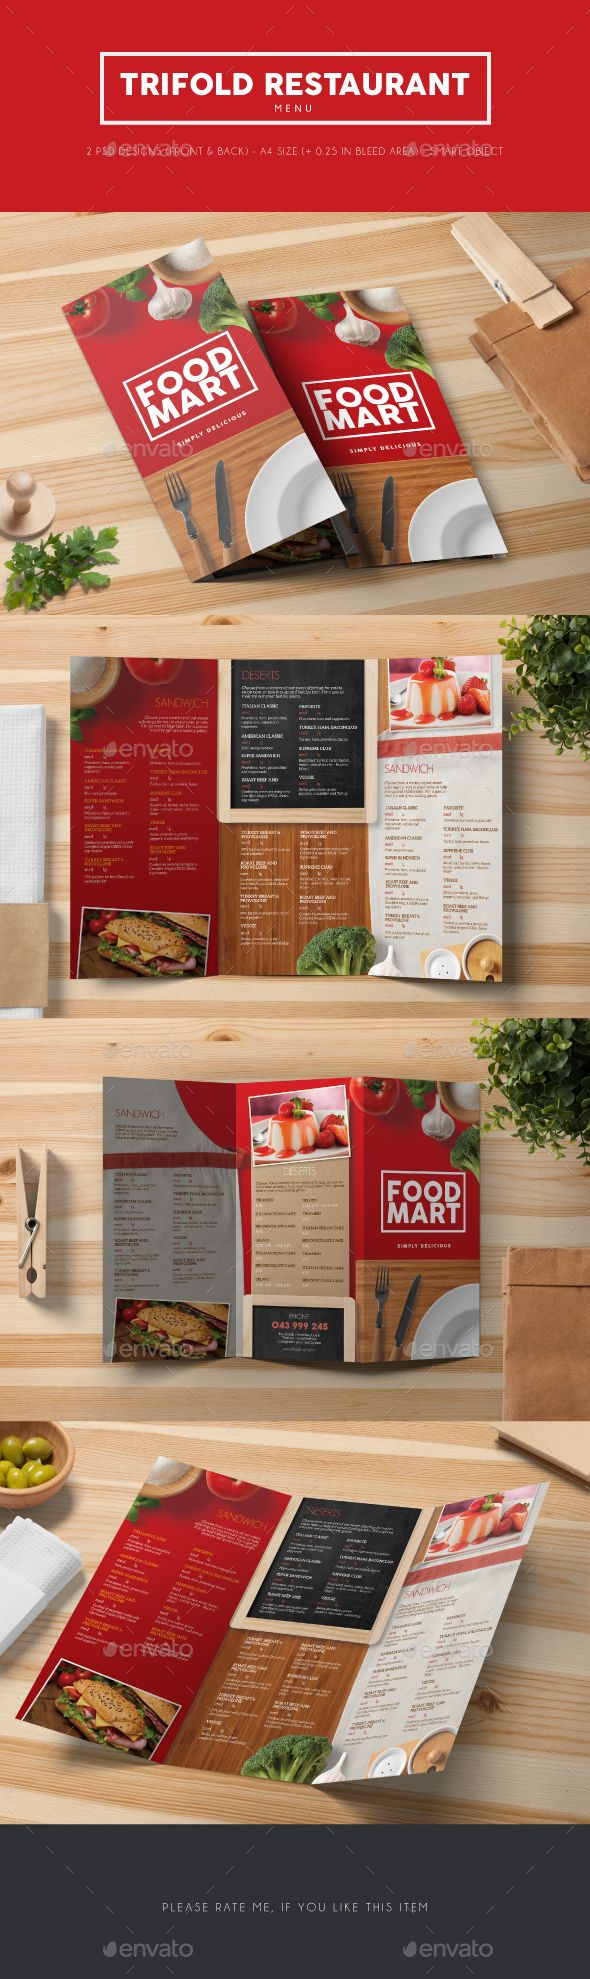 Trifold Restaurant Menu Template PSD #design Download: http://graphicriver.net/item/trifold-restaurant-menu/13121051?ref=ksioks